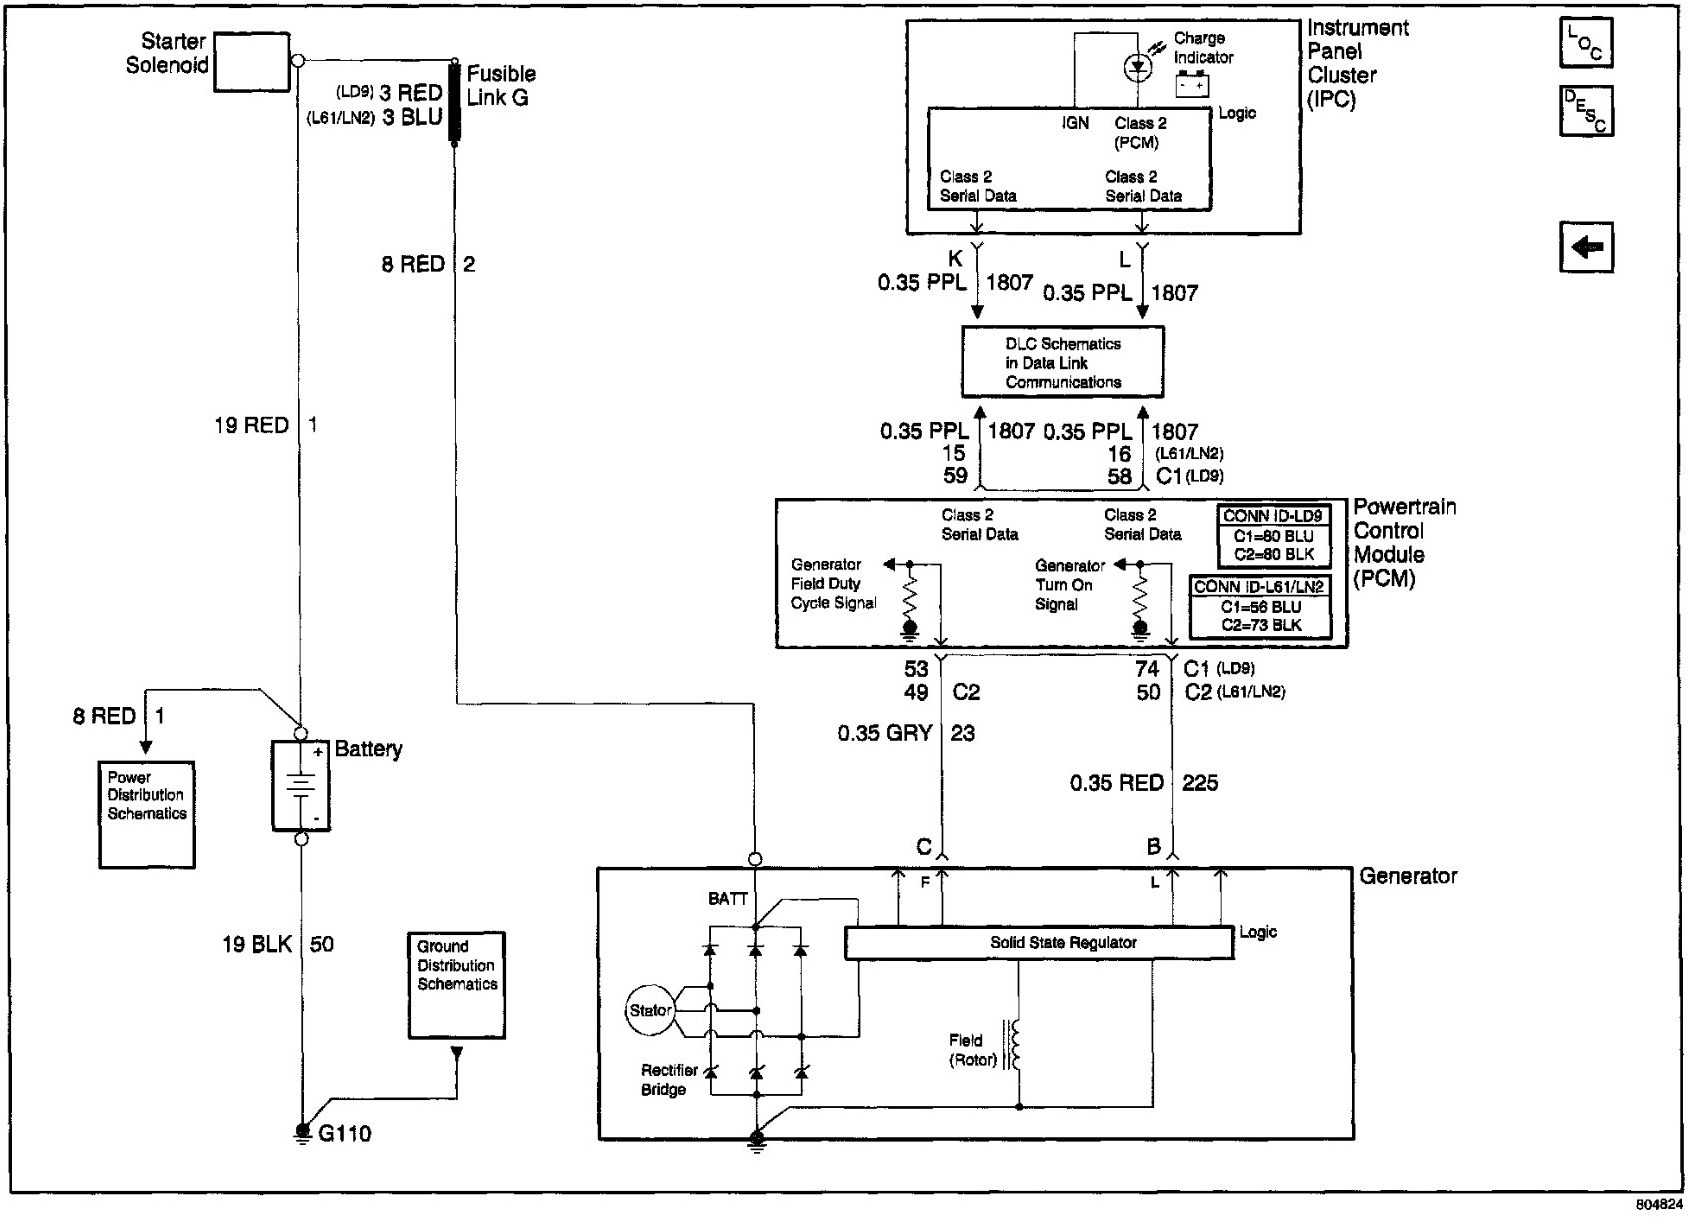 Charging System Wiring Diagram Chevy Cavalier Charging System Putting Out Around Volts if It Has Of Charging System Wiring Diagram